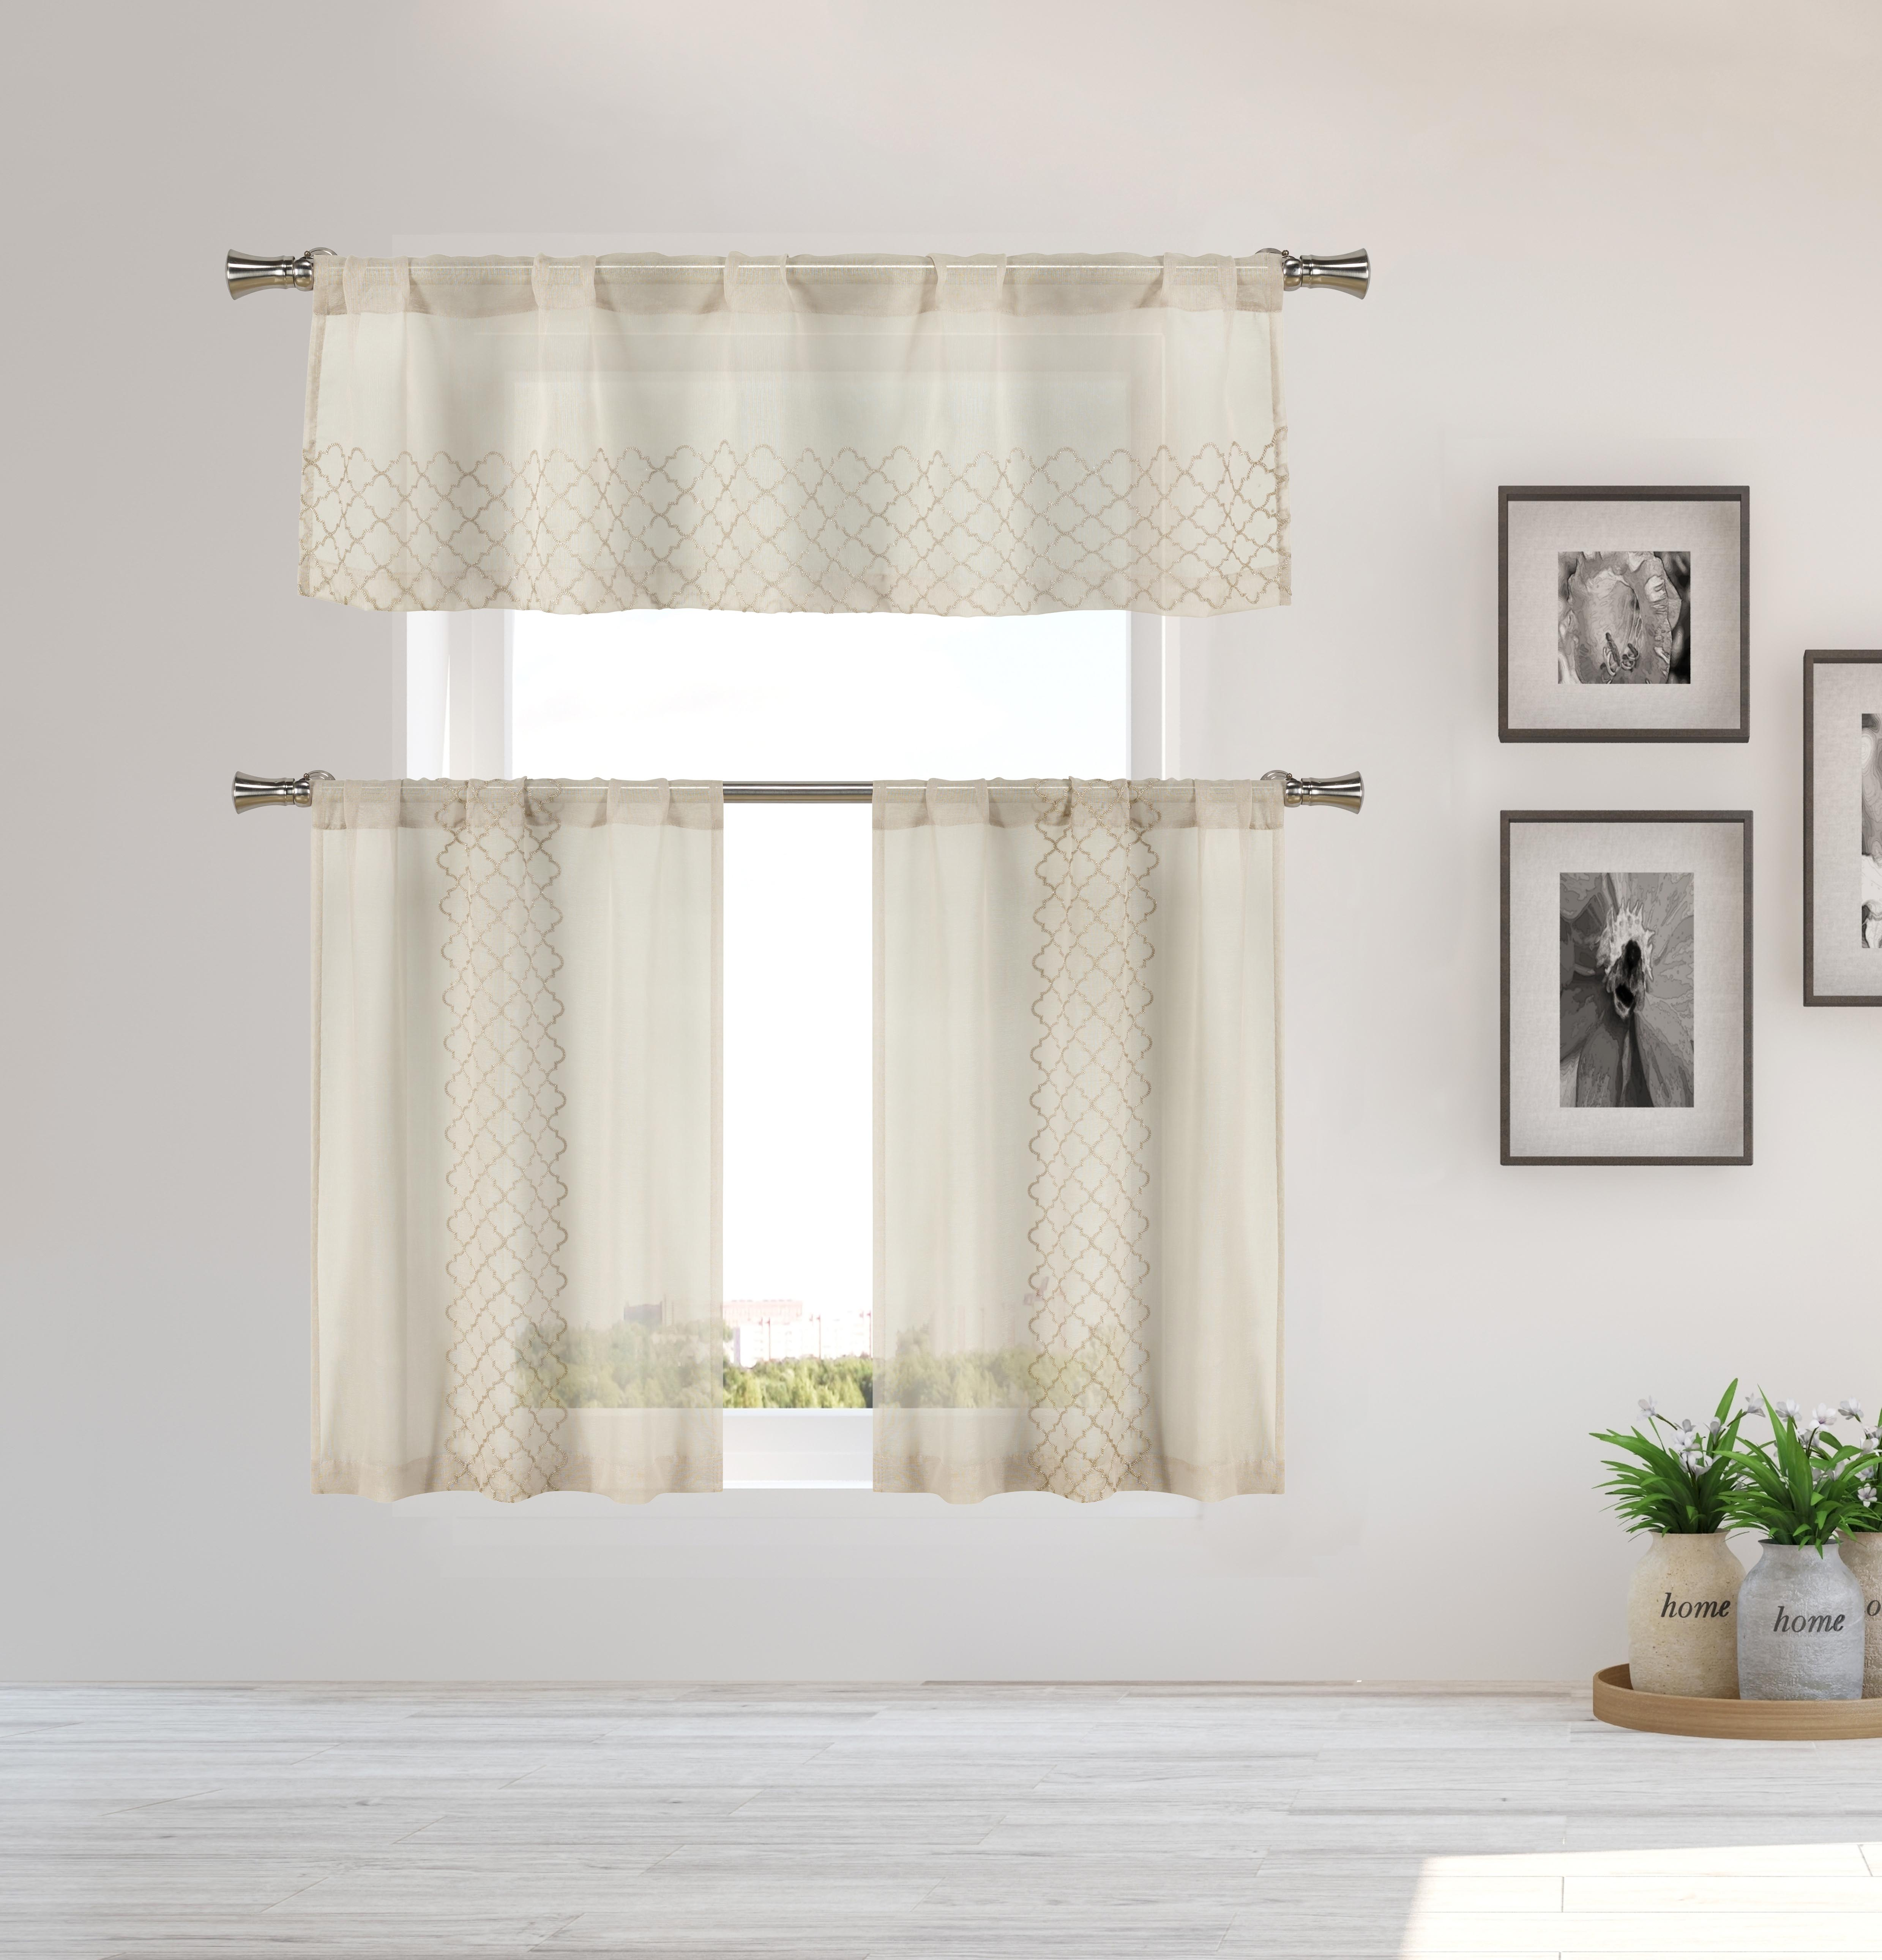 Geometric Moroccan Printed Short Farmhouse Kitchen Cafe Tier Curtains Short Curtains For Bathroom Brown Taupe Caromio Sheer Kitchen Tier Curtains 24 Inch Length Home Kitchen Tiers